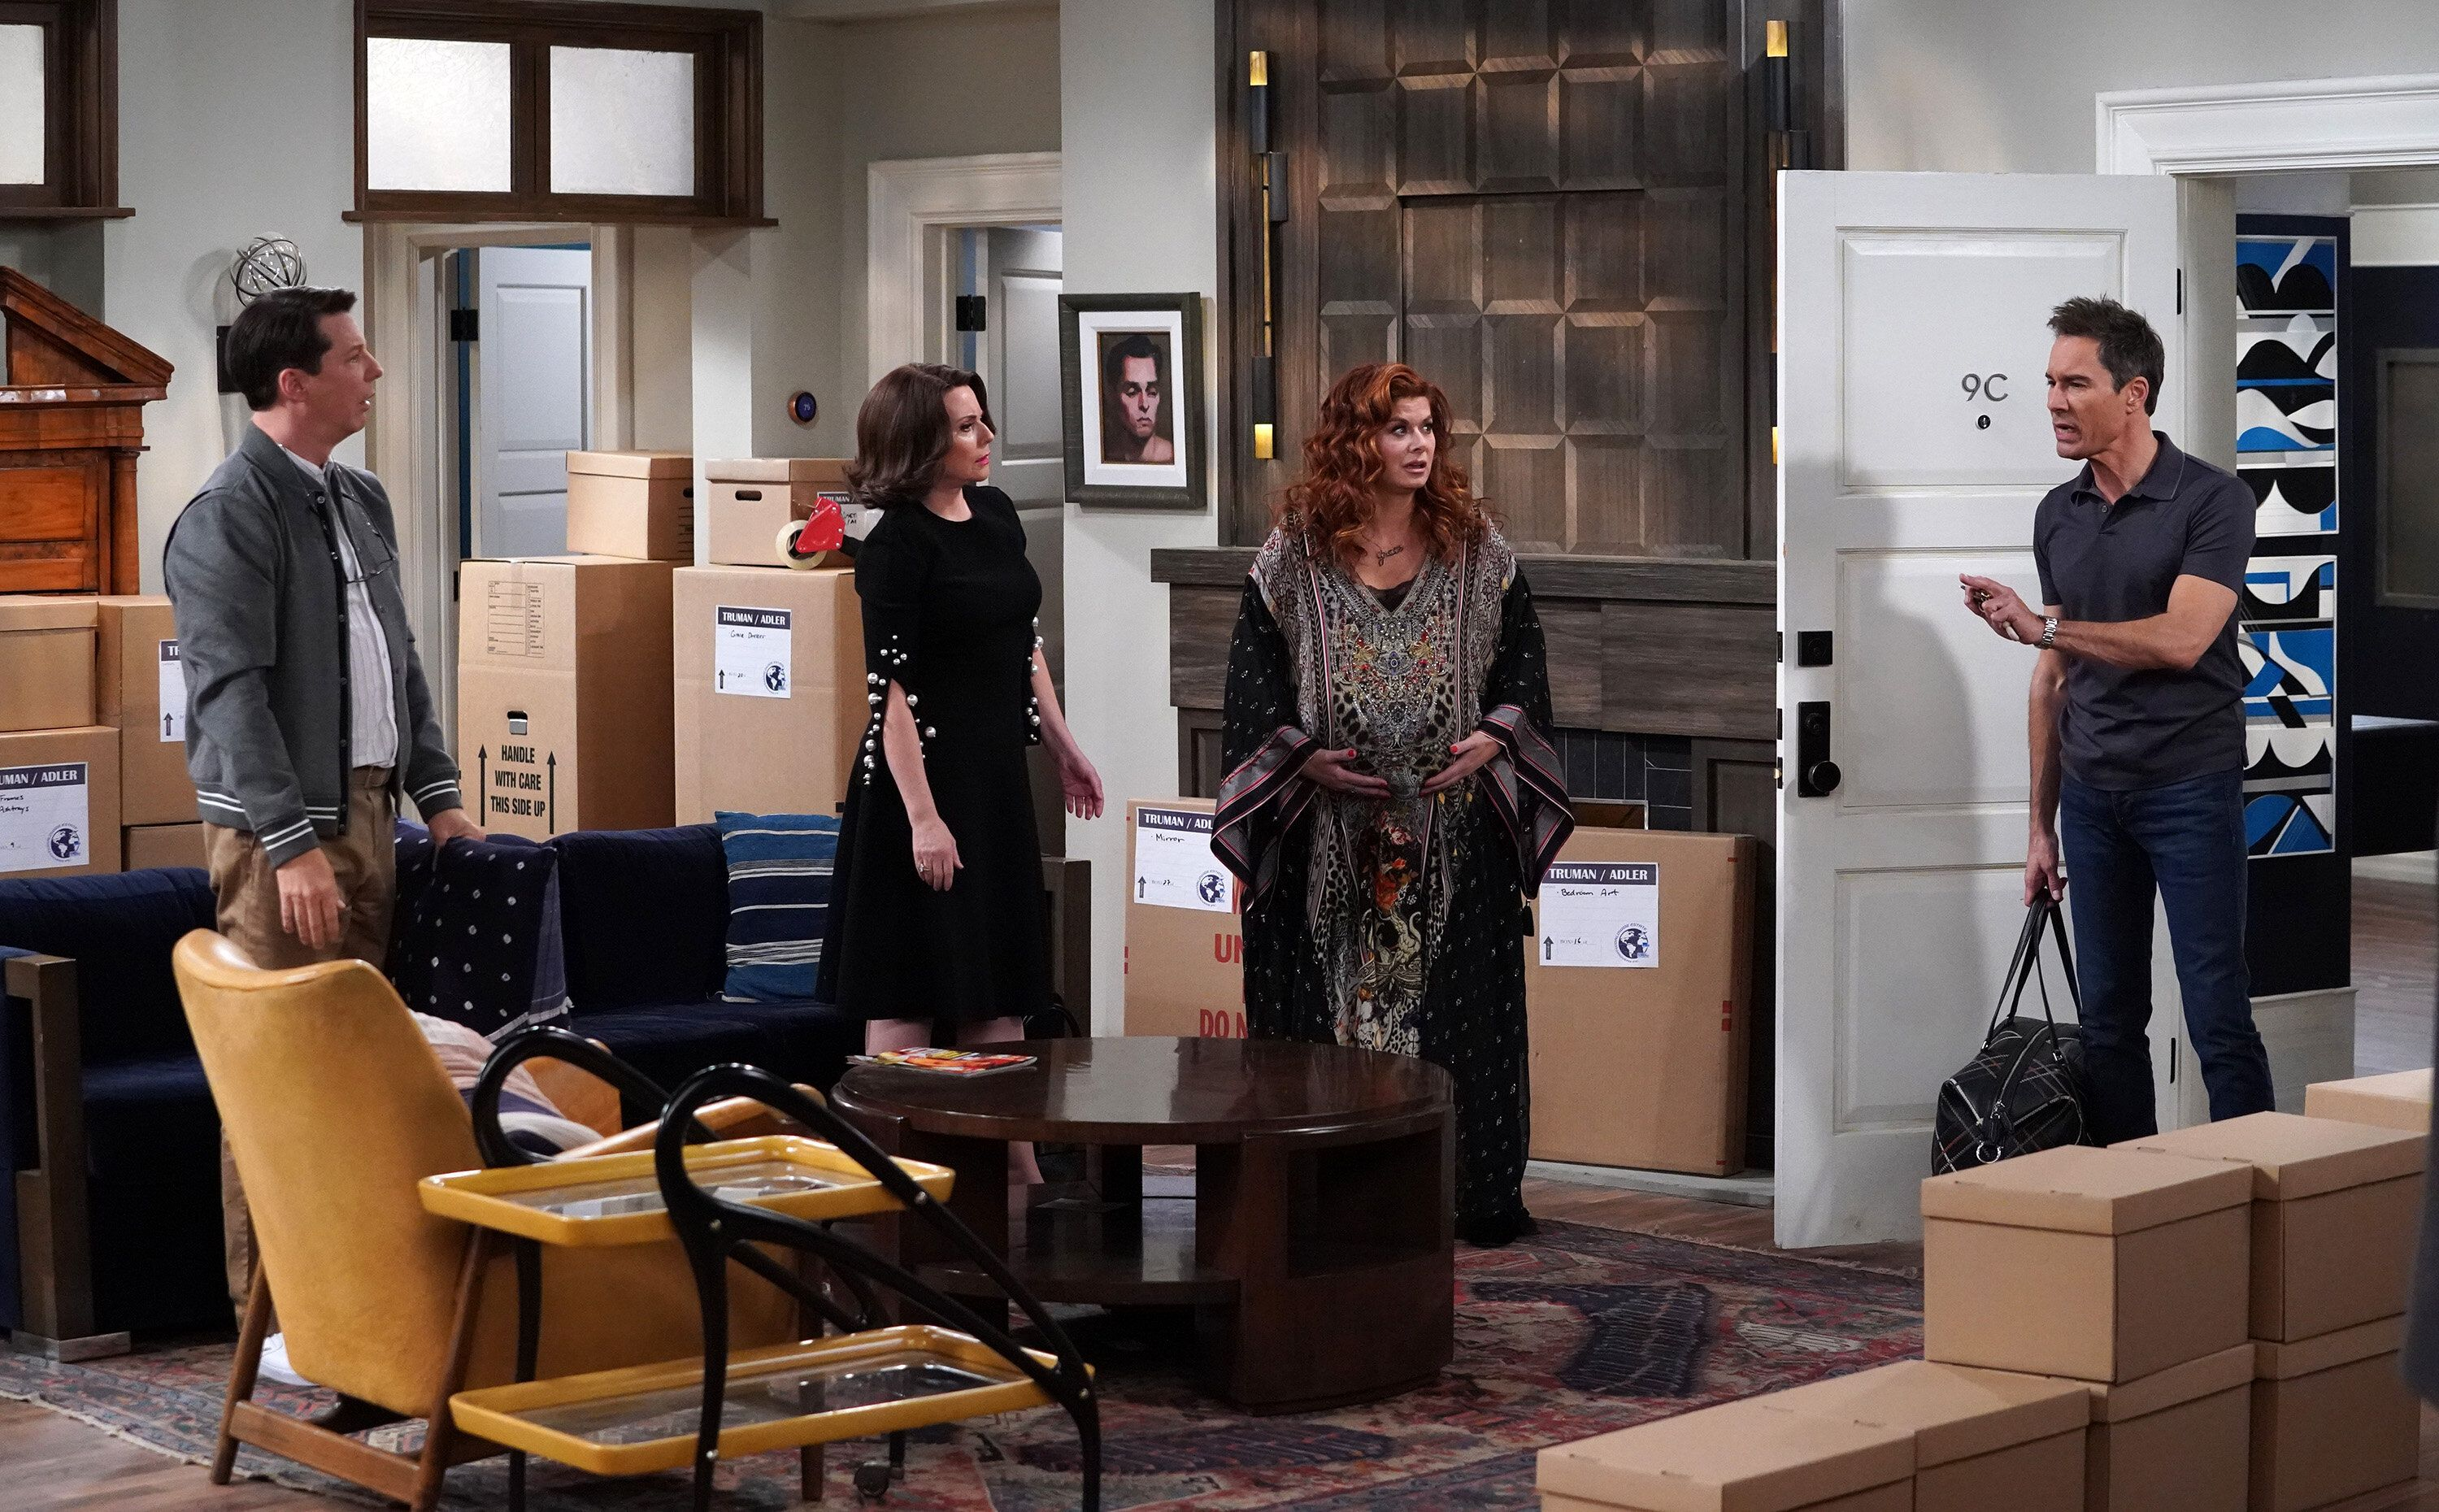 From left, Sean Hayes as Jack McFarland, Megan Mullally as Karen Walker, Messing as Grace Adler, Eric McCormack as Will Truma